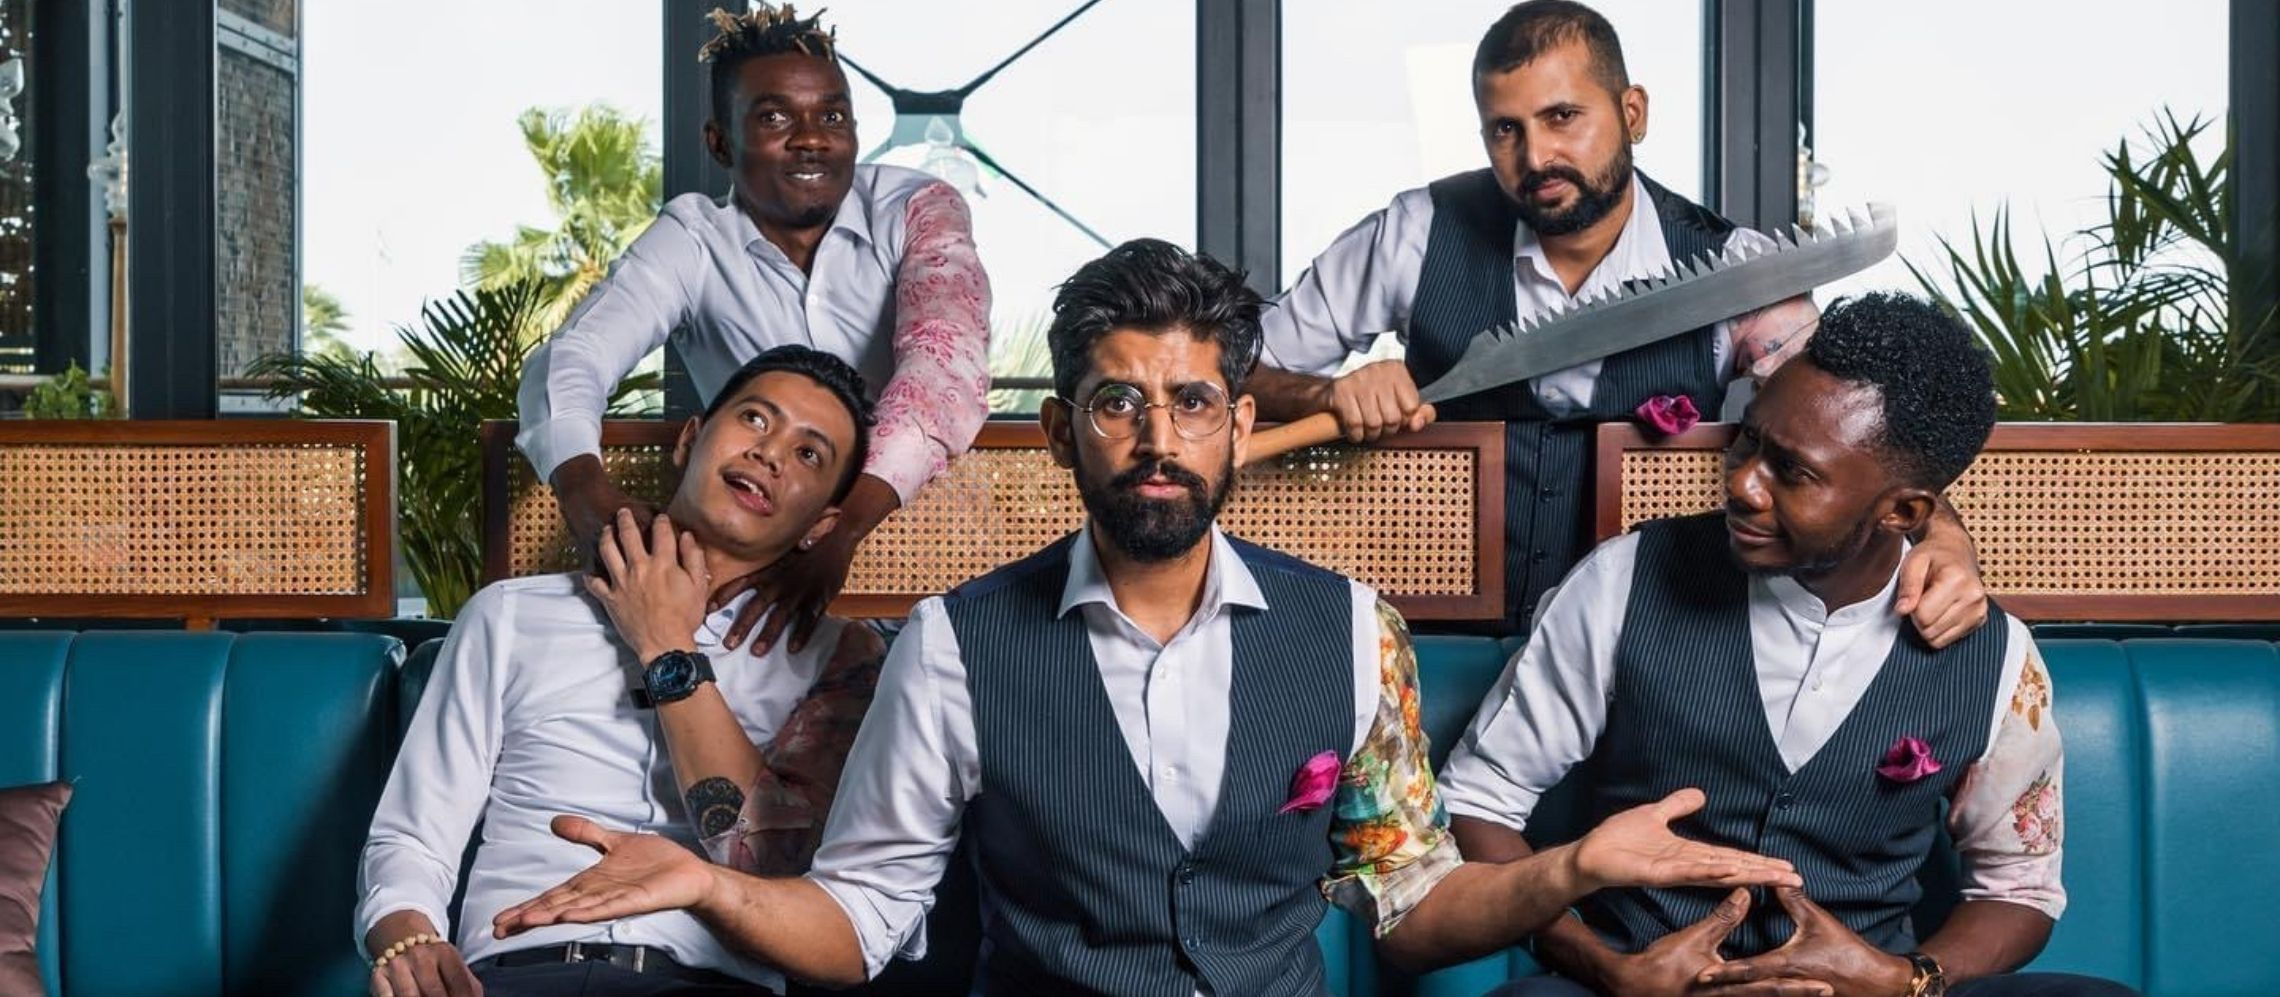 Photo for: Jeet Verma on creating the perfect drinks list at Dubai's Masti Cocktails & Cuisine